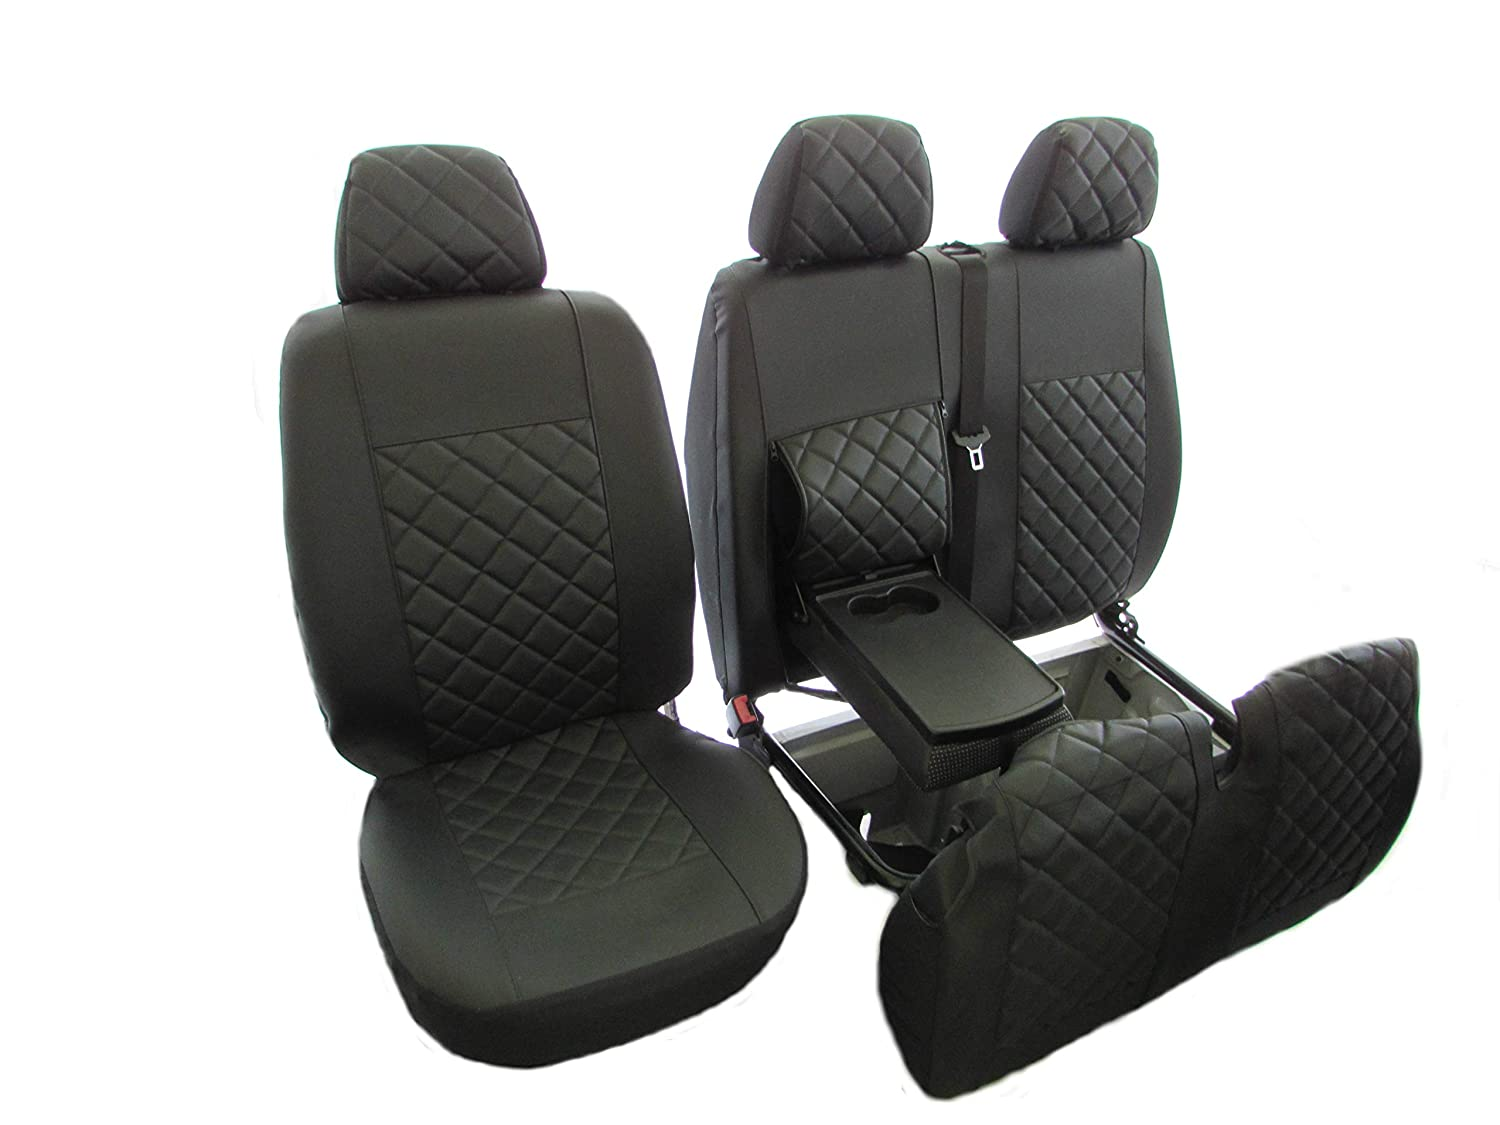 1 single 1 double Texmar PEUGEOT BOXER,CITROEN JUMPER//RELAY,FIAT DUCATO 2006-2018 RHD BLACK-GRAY ECO LEATHER Seat Covers 2+1